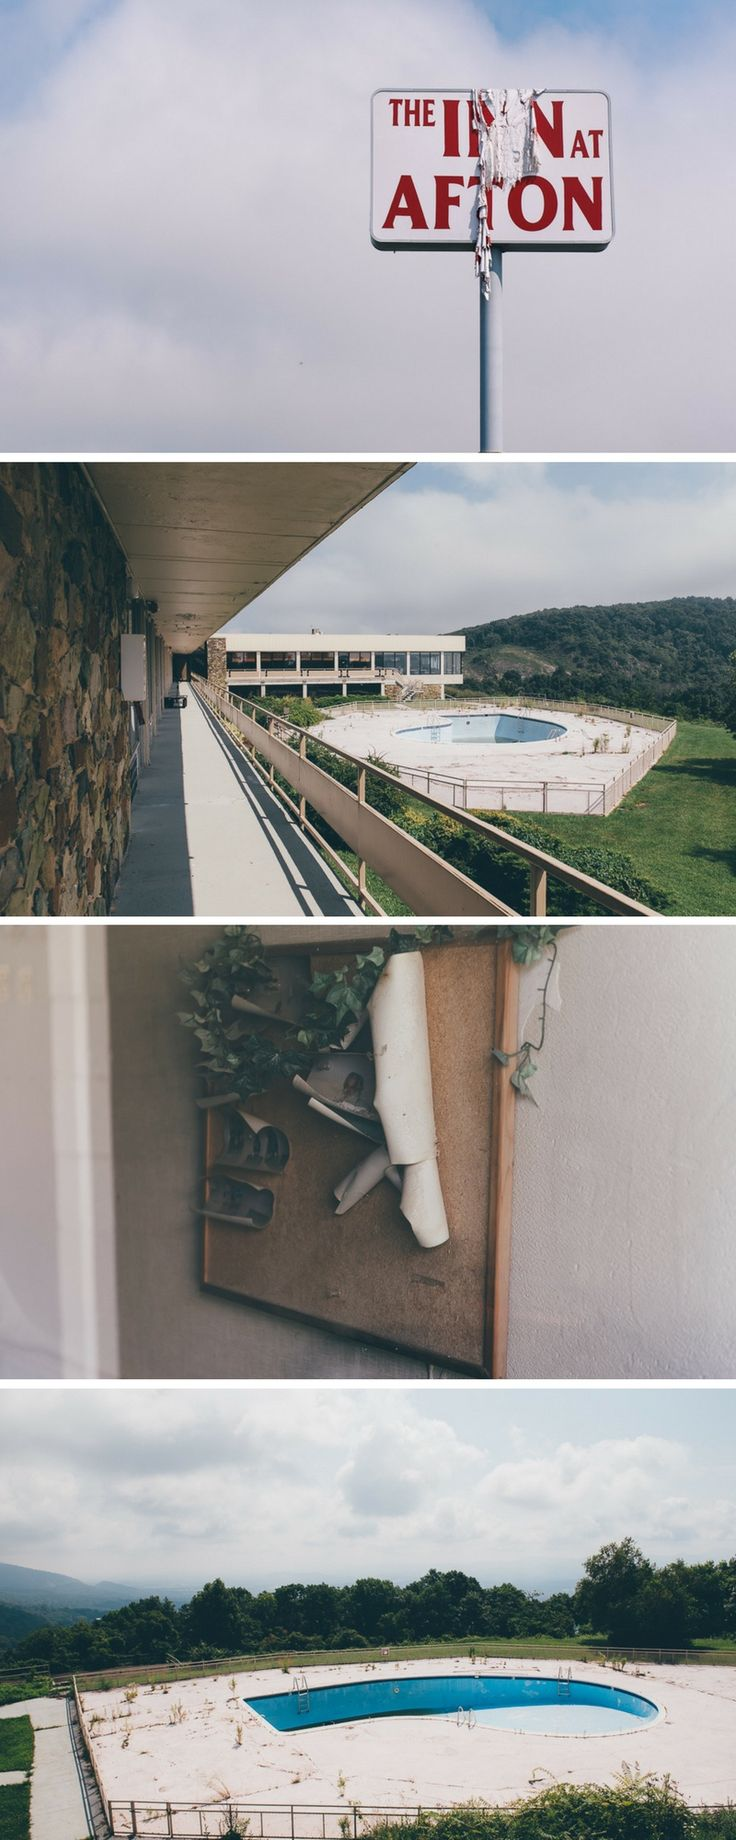 Lost Places in Virginia - visiting the once 'Million Dollar View Motel' at the Blue Ridge Parkway during our USA Roadtrip.